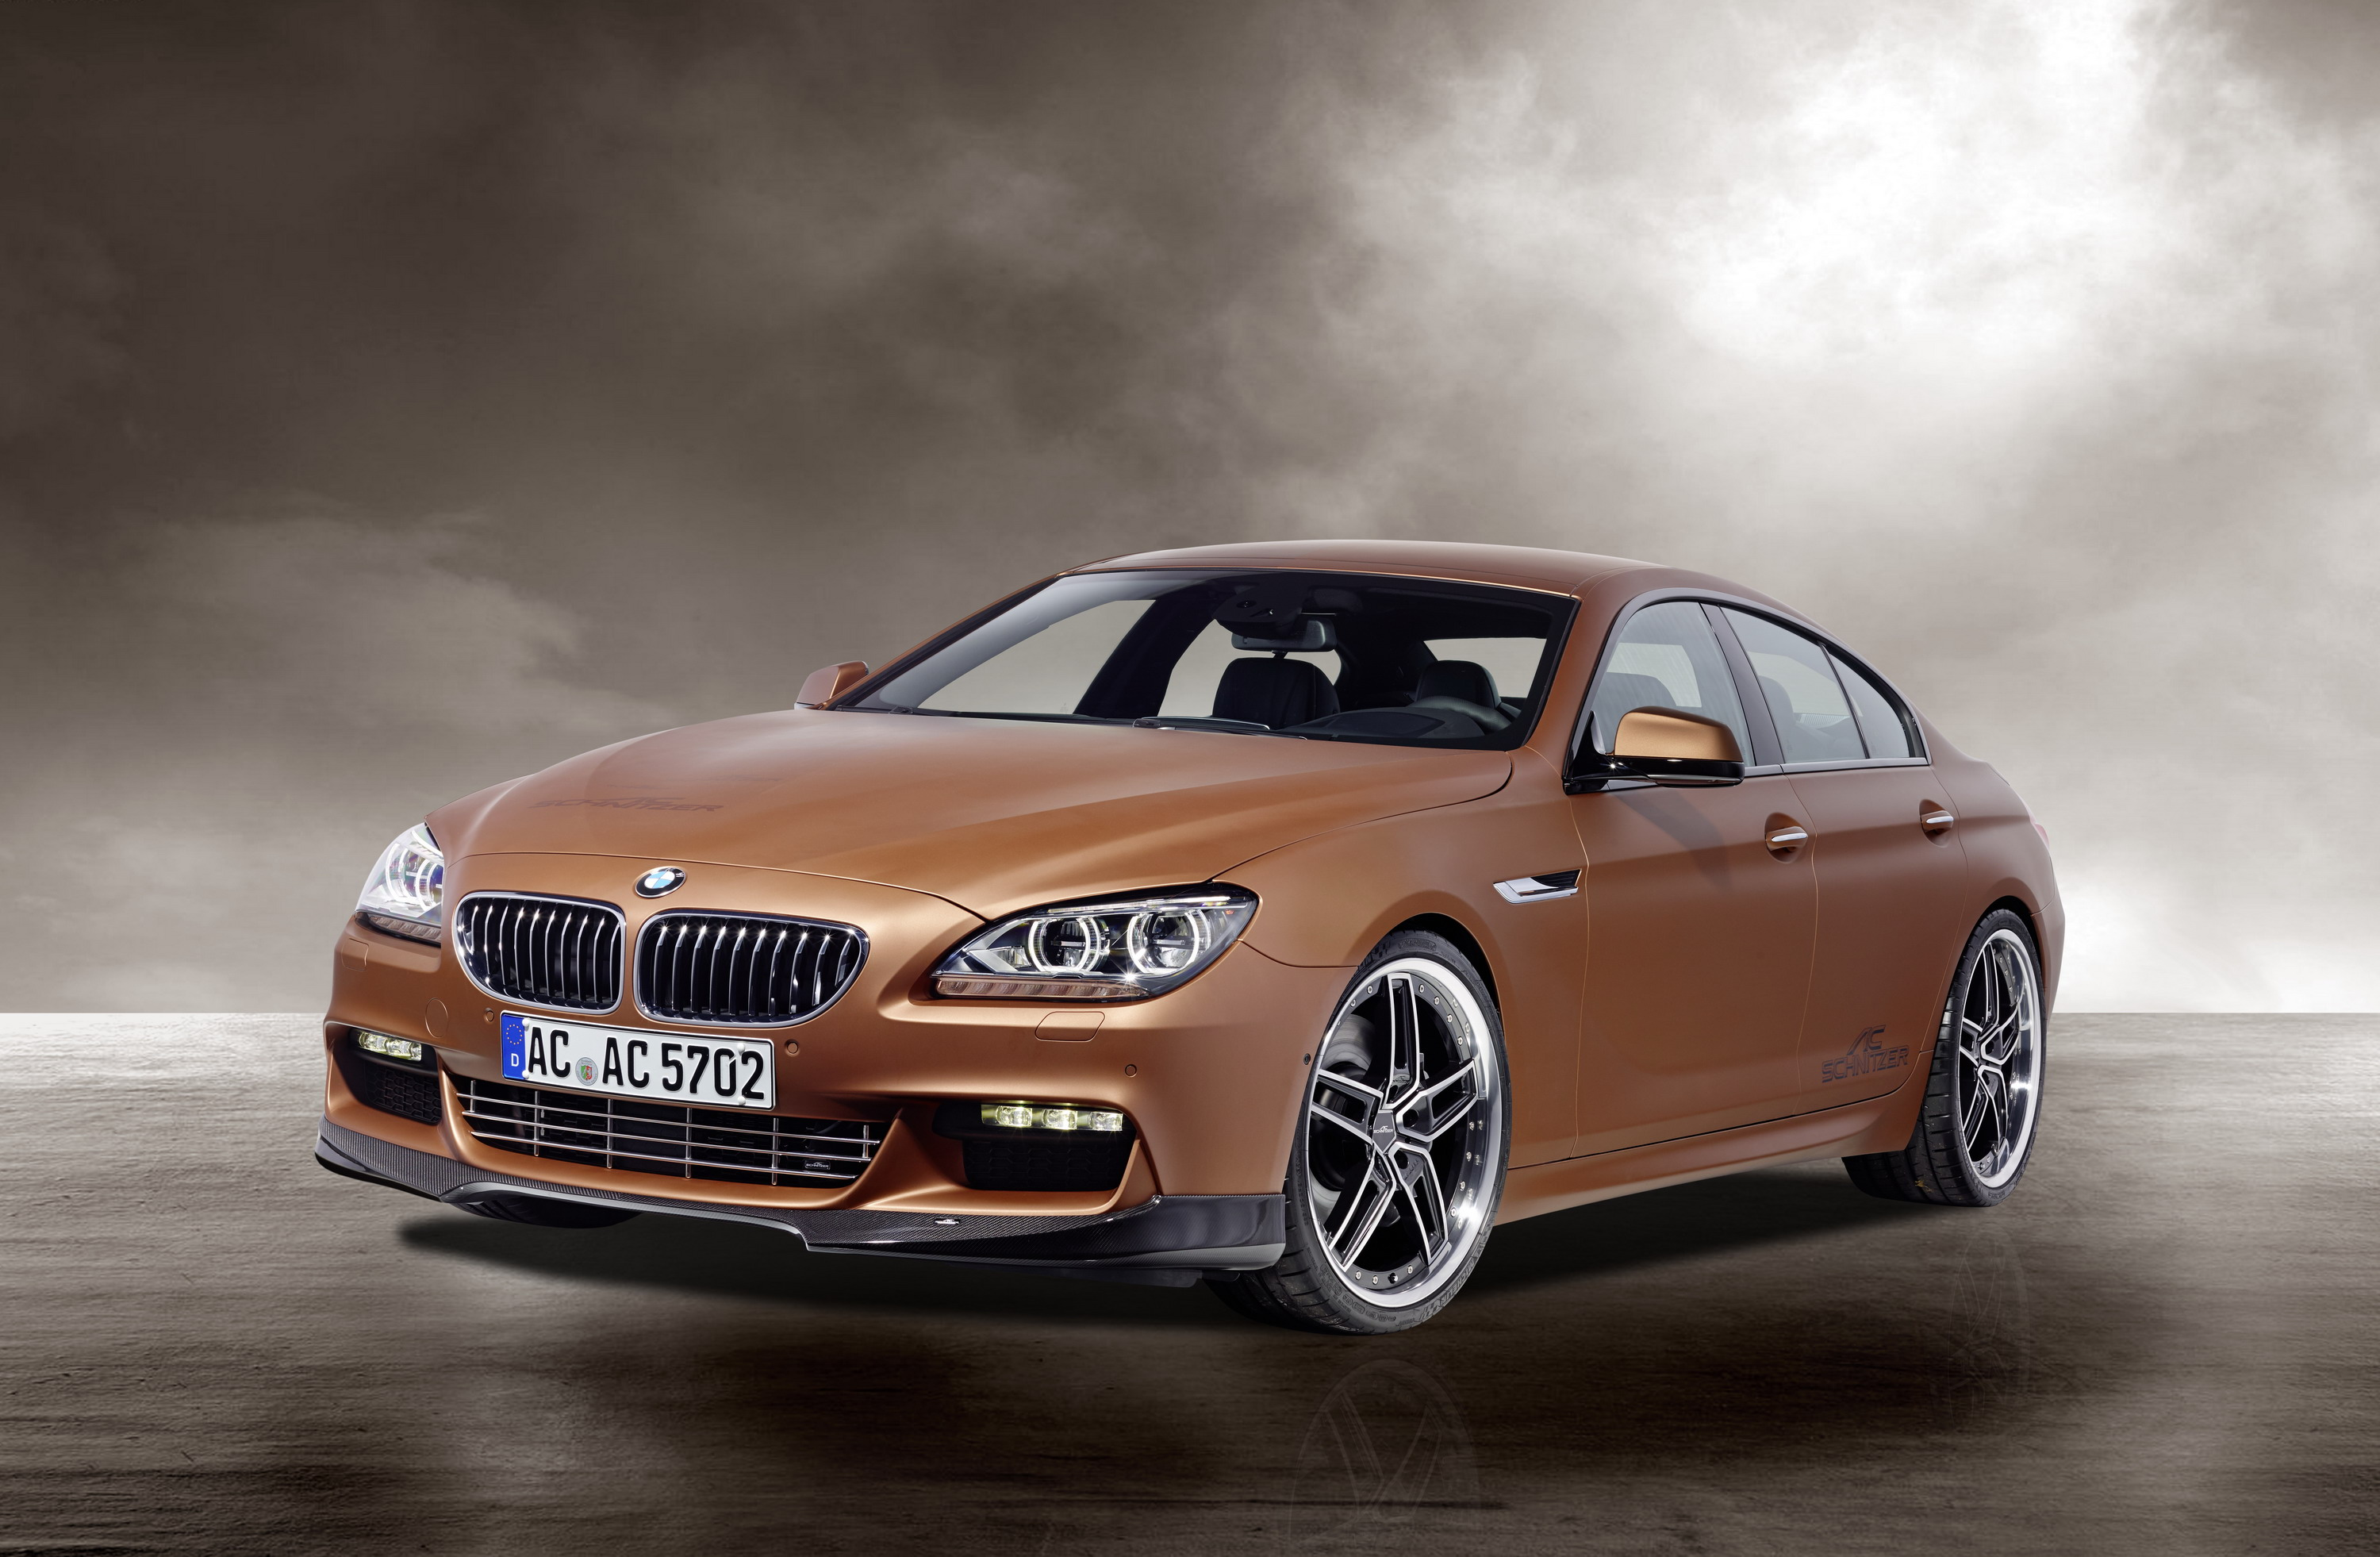 2013 bmw 640d gran coupe by ac schnitzer top speed. Black Bedroom Furniture Sets. Home Design Ideas